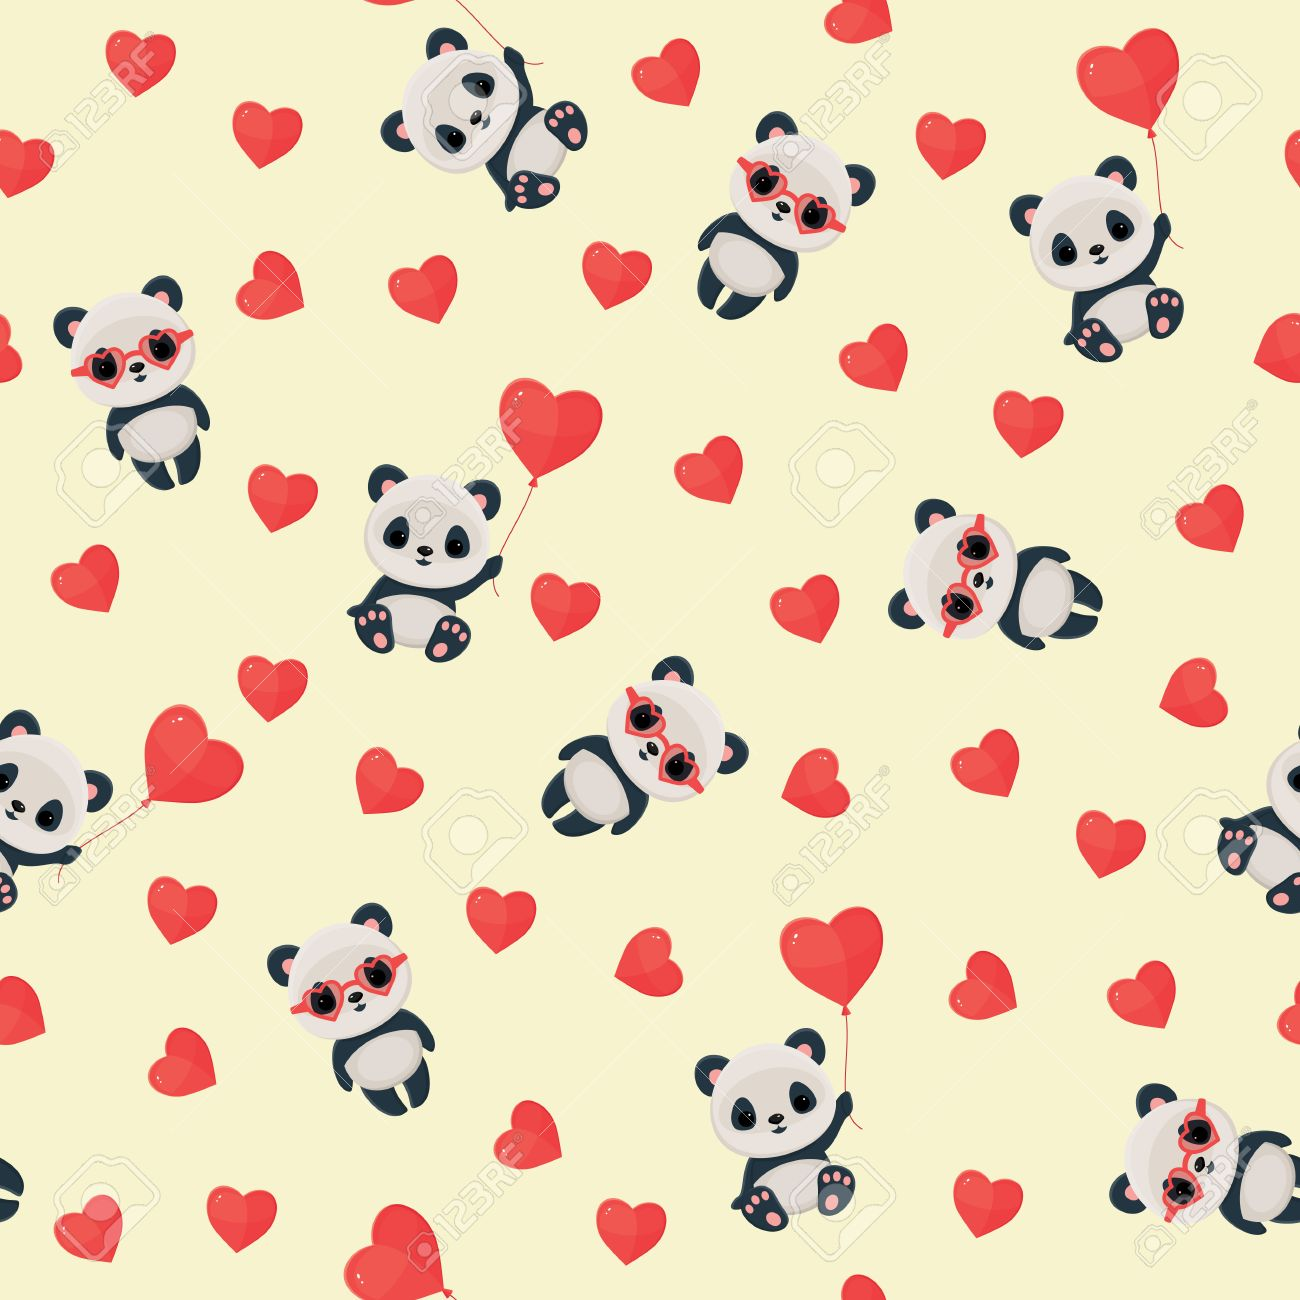 Seamless pattern with panda in love. Saint Valentine's Day wallpaper. Stock Vector - 51335001